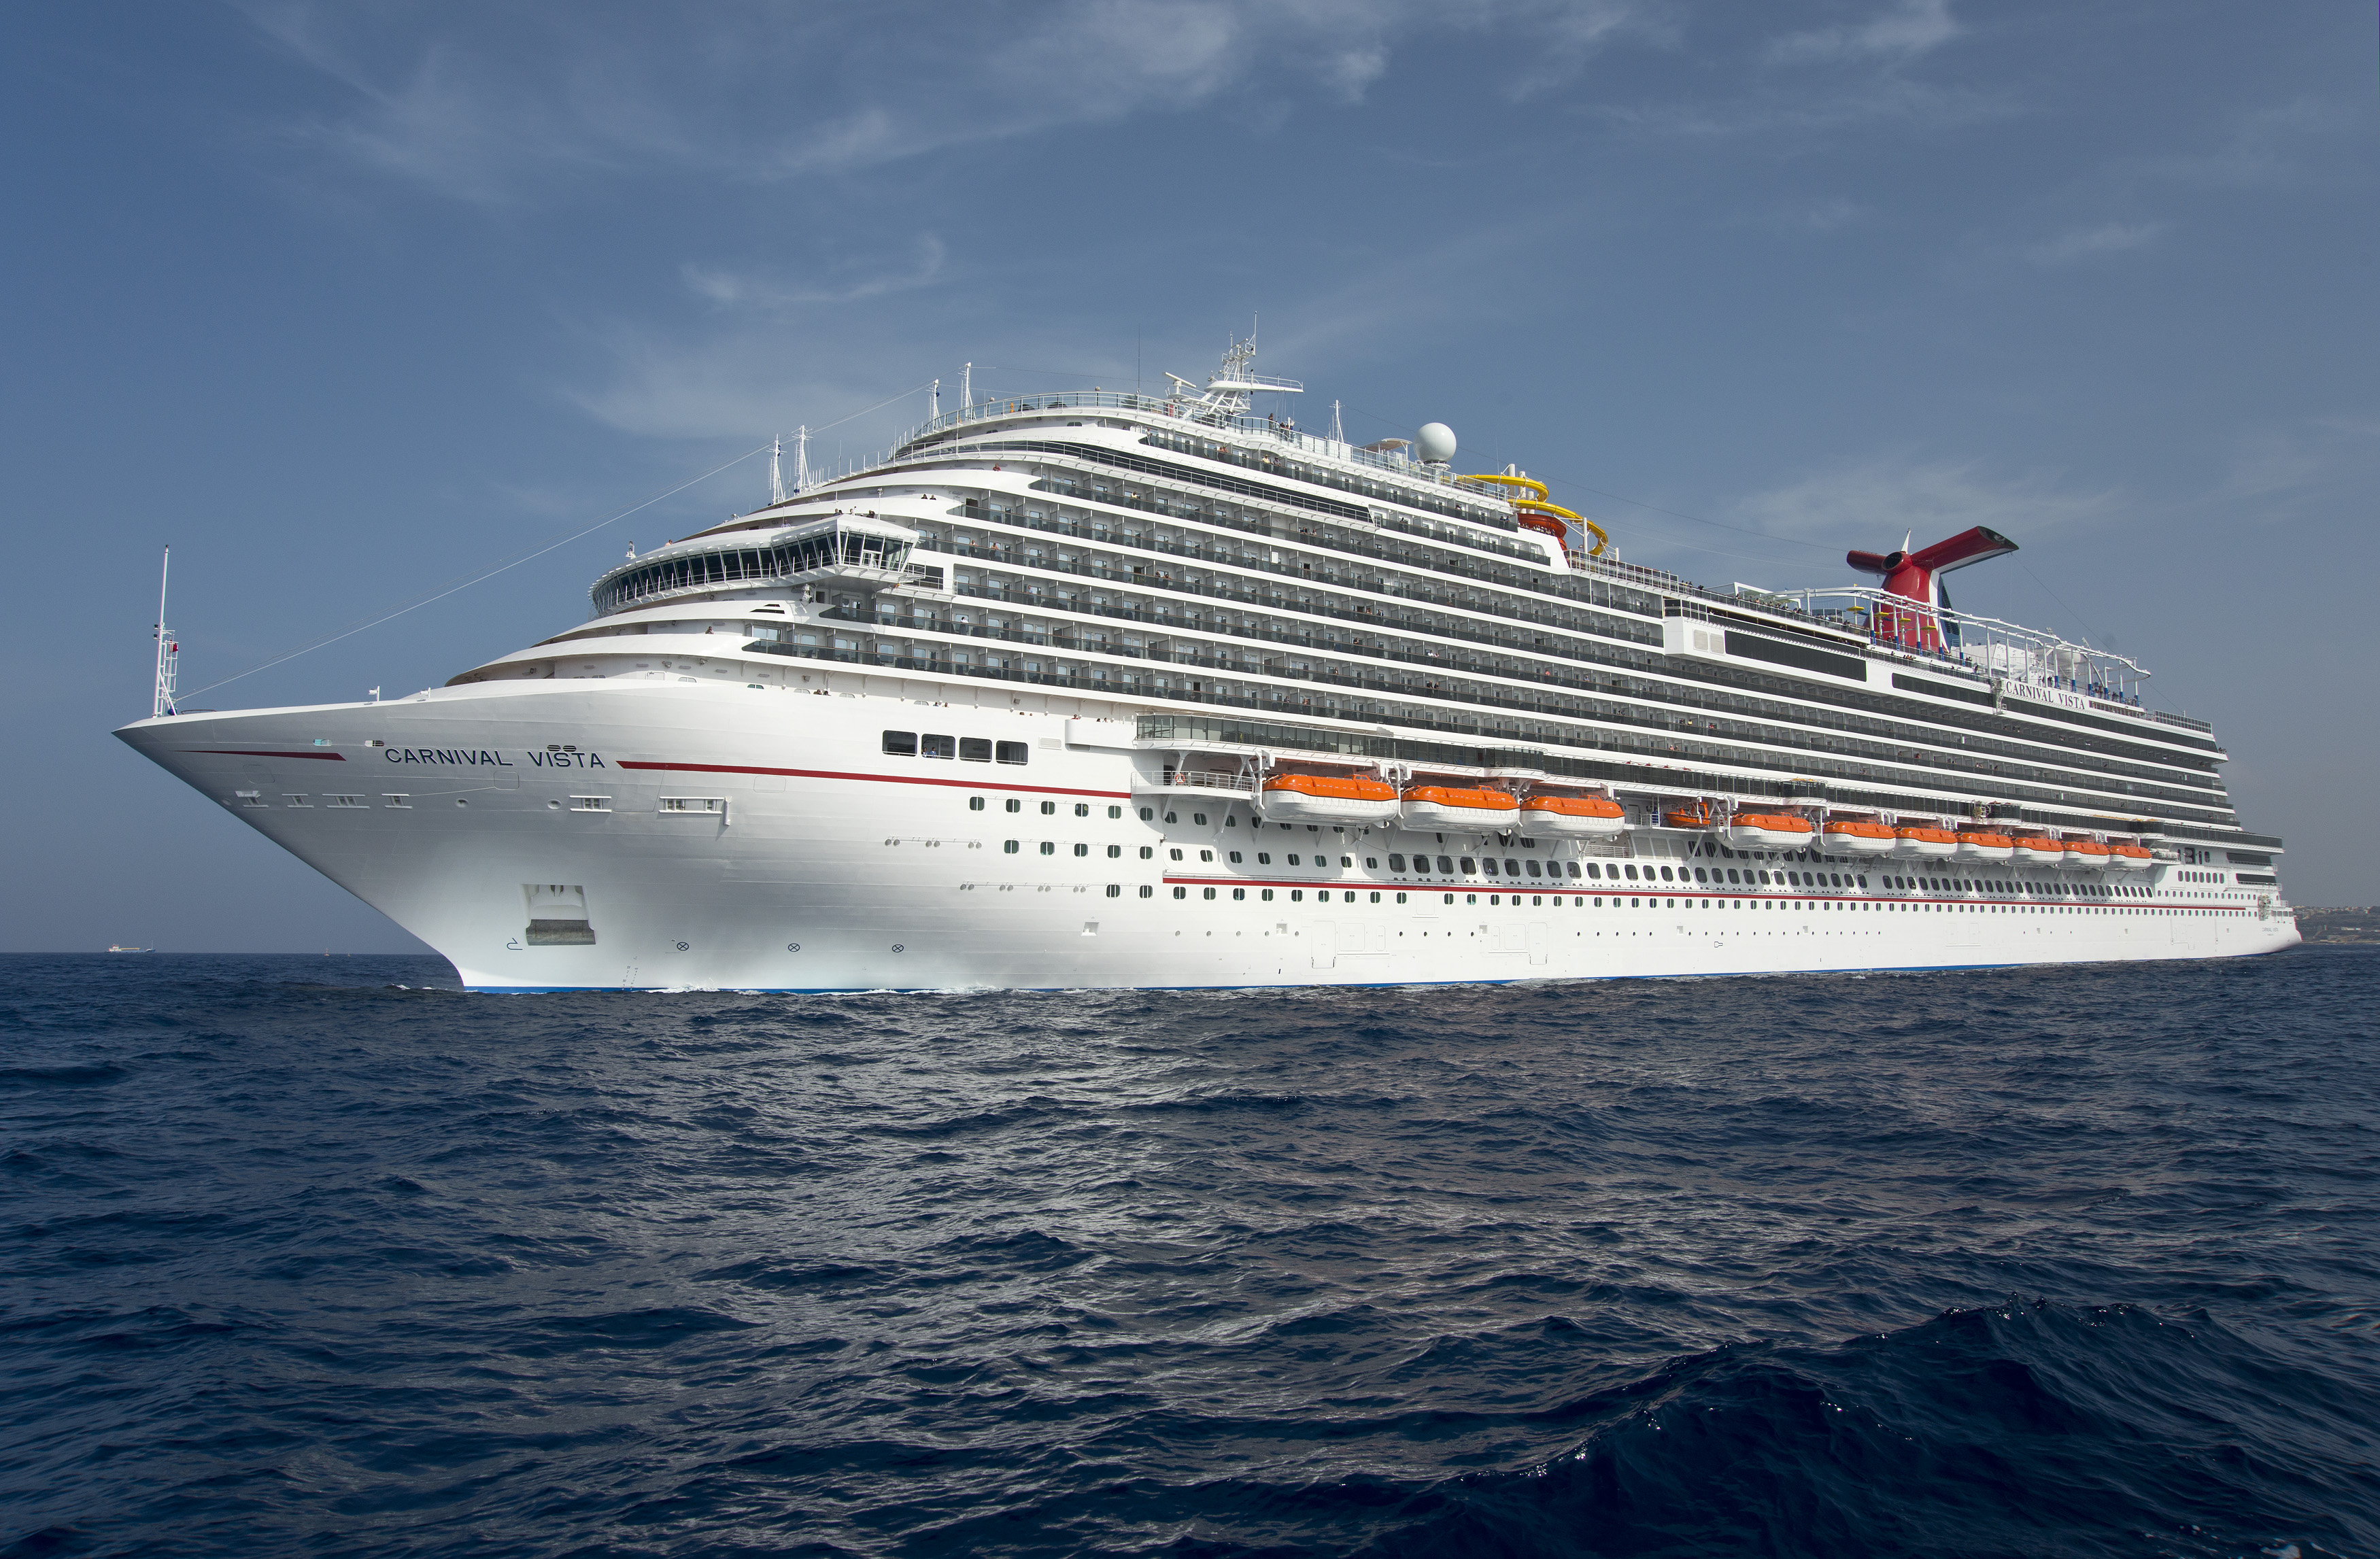 Carnival Cruise Line to Reposition Ships in Three Key Homeports in 2018, Providing Exciting New Vacation Choices From Galveston, Port Canaveral and Miami